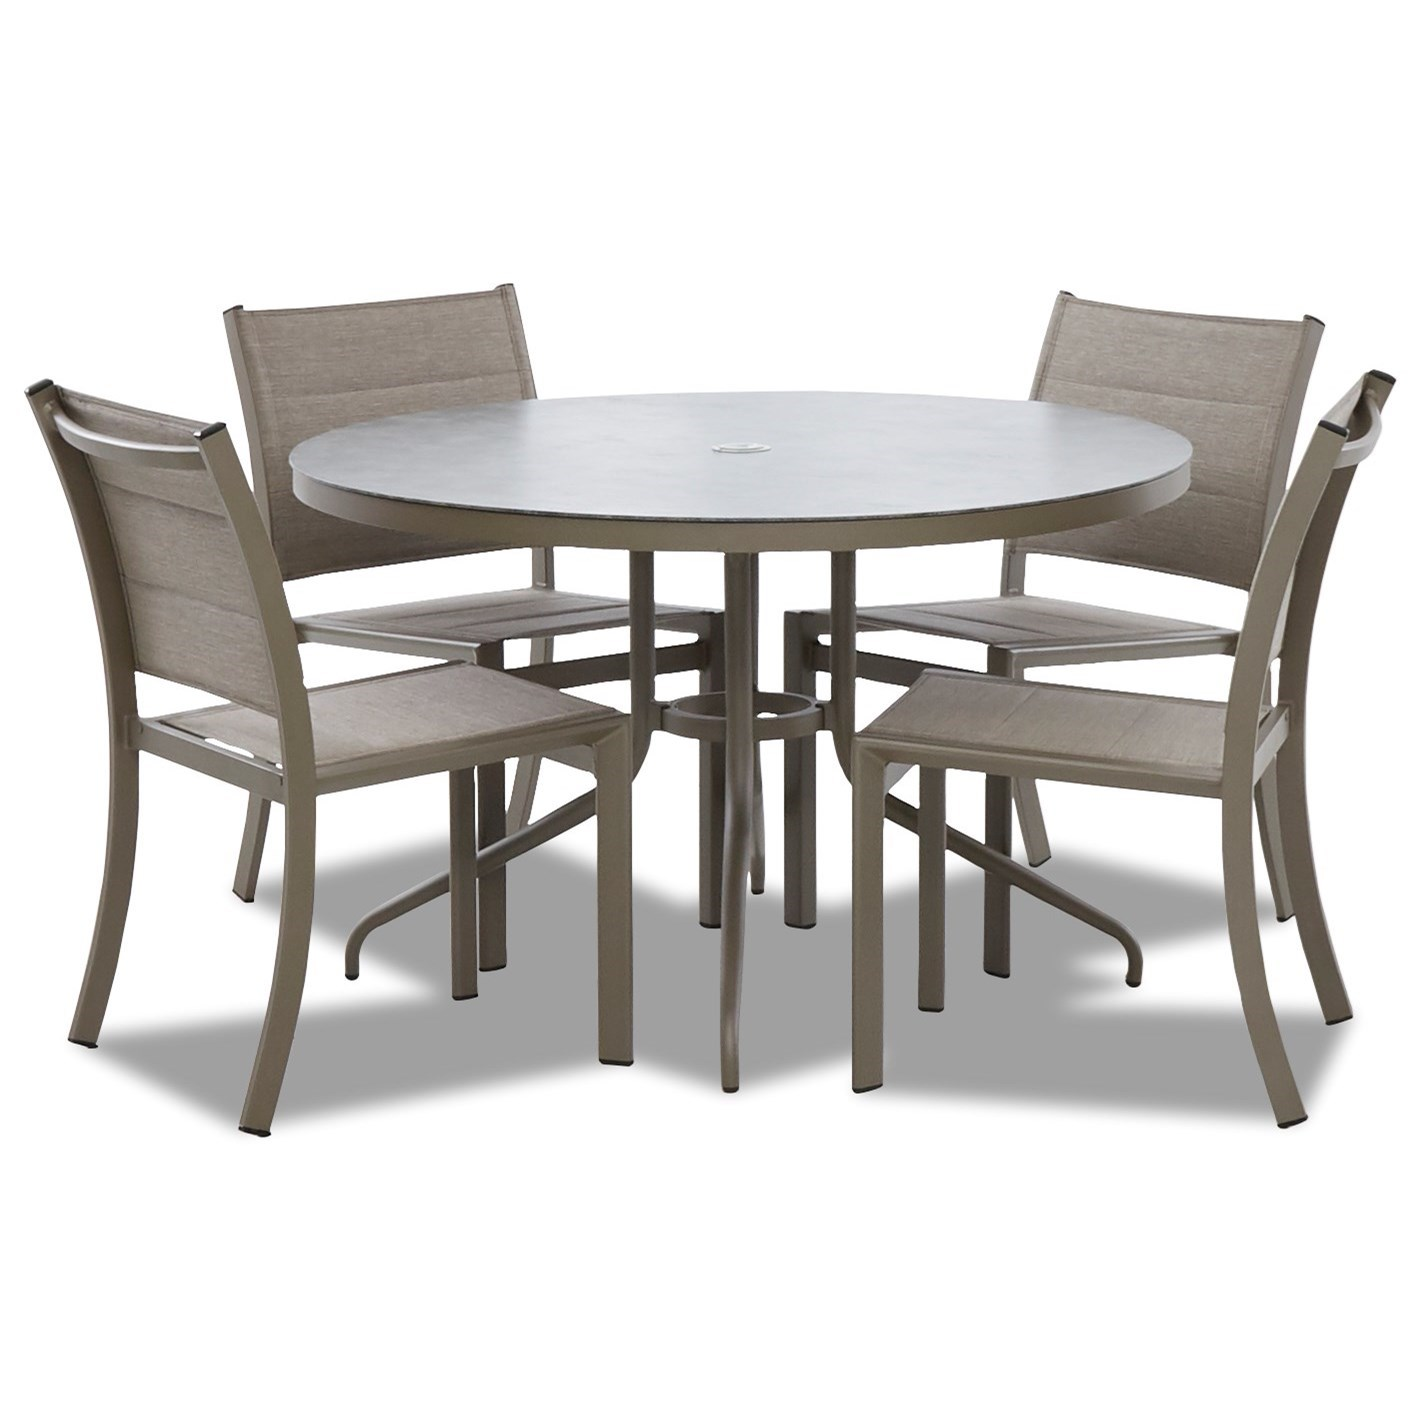 Urban Retreat 5 Piece Outdoor Dining Set by Klaussner Outdoor at Hudson's Furniture